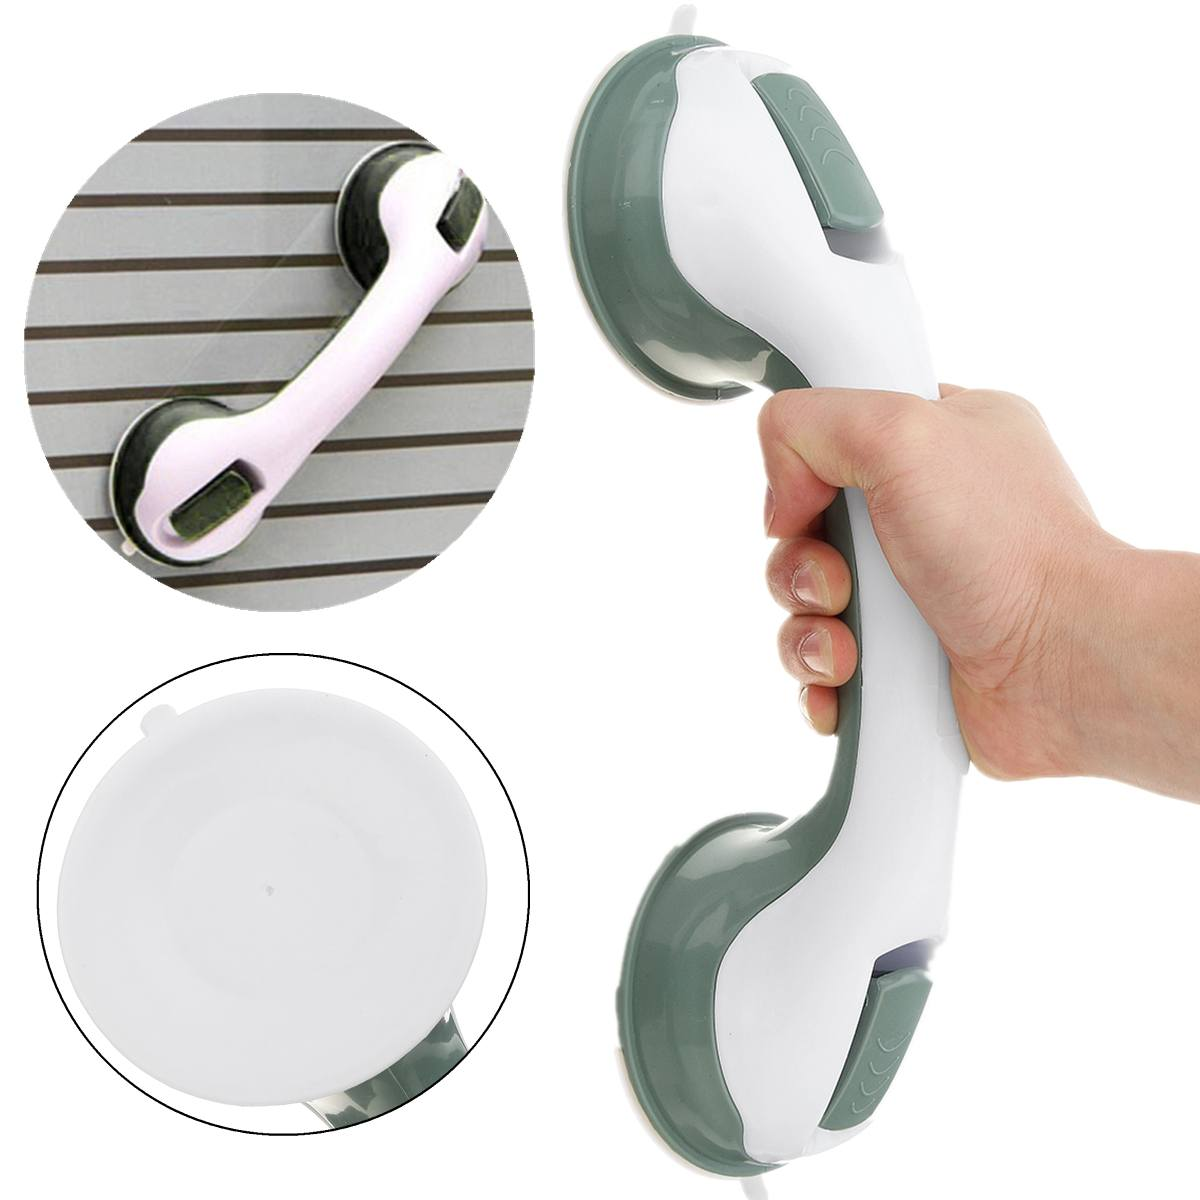 1PC Bathroom Suction Cup Handle Grab Bar For Elderly Safety Toilet Bath Shower Tub Bathroom Shower Grab Handle Rail Grip